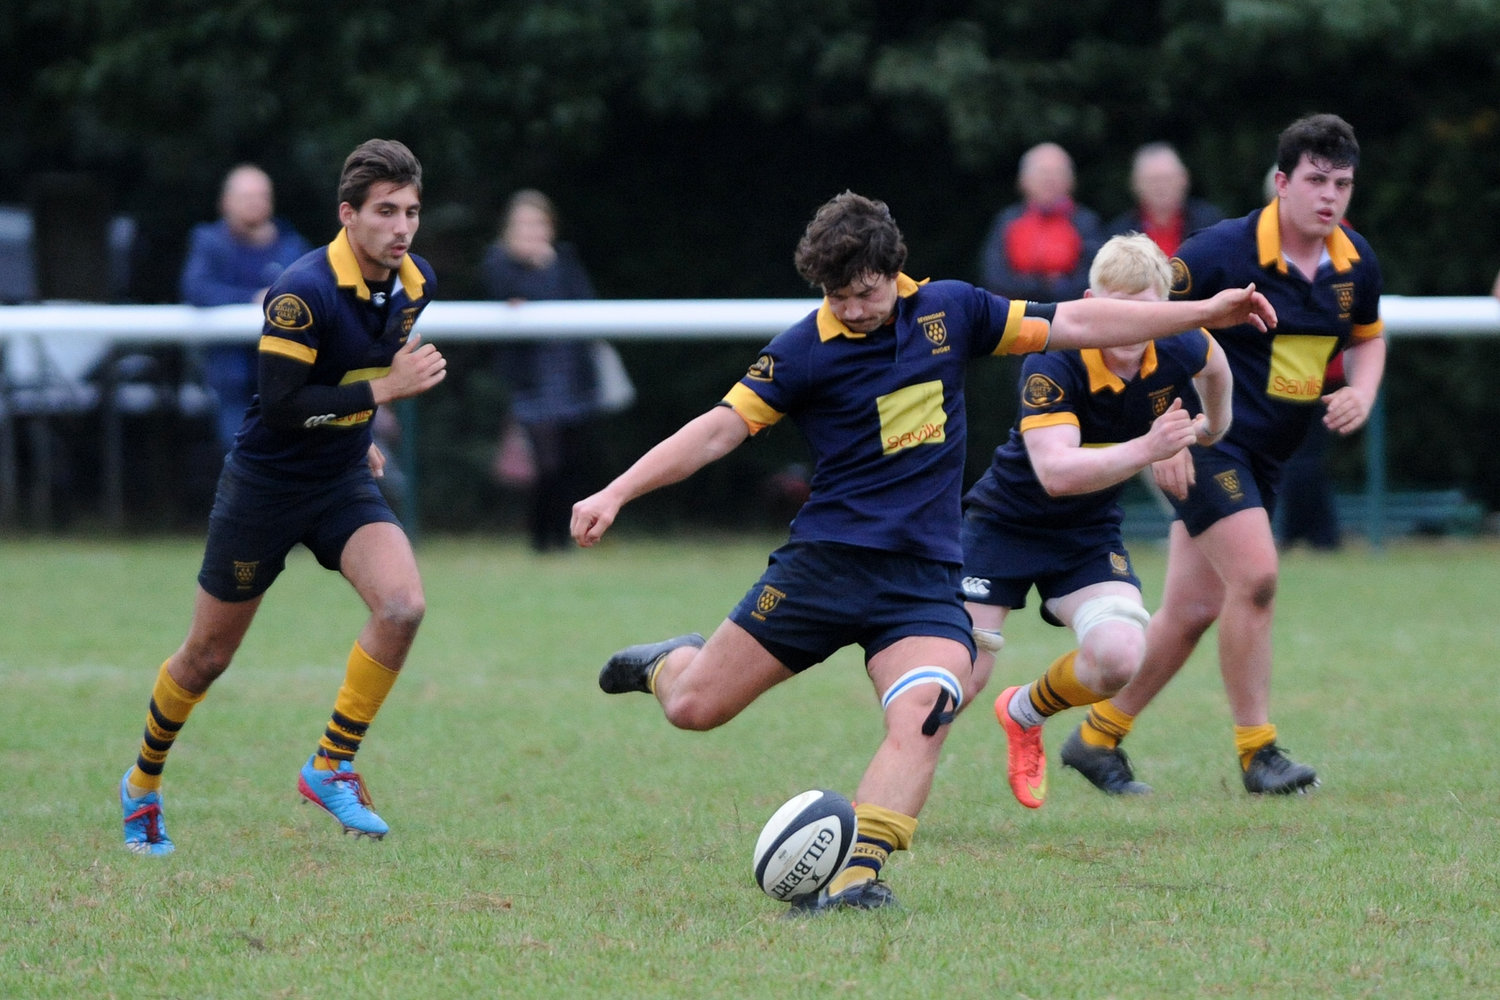 Issac Winter put Oaks 1st XV ahead with five minutes to go against Maidstone 1st XV but a lack of accuracy cost Oaks in the dying minutes. Photo Credit: David Purday